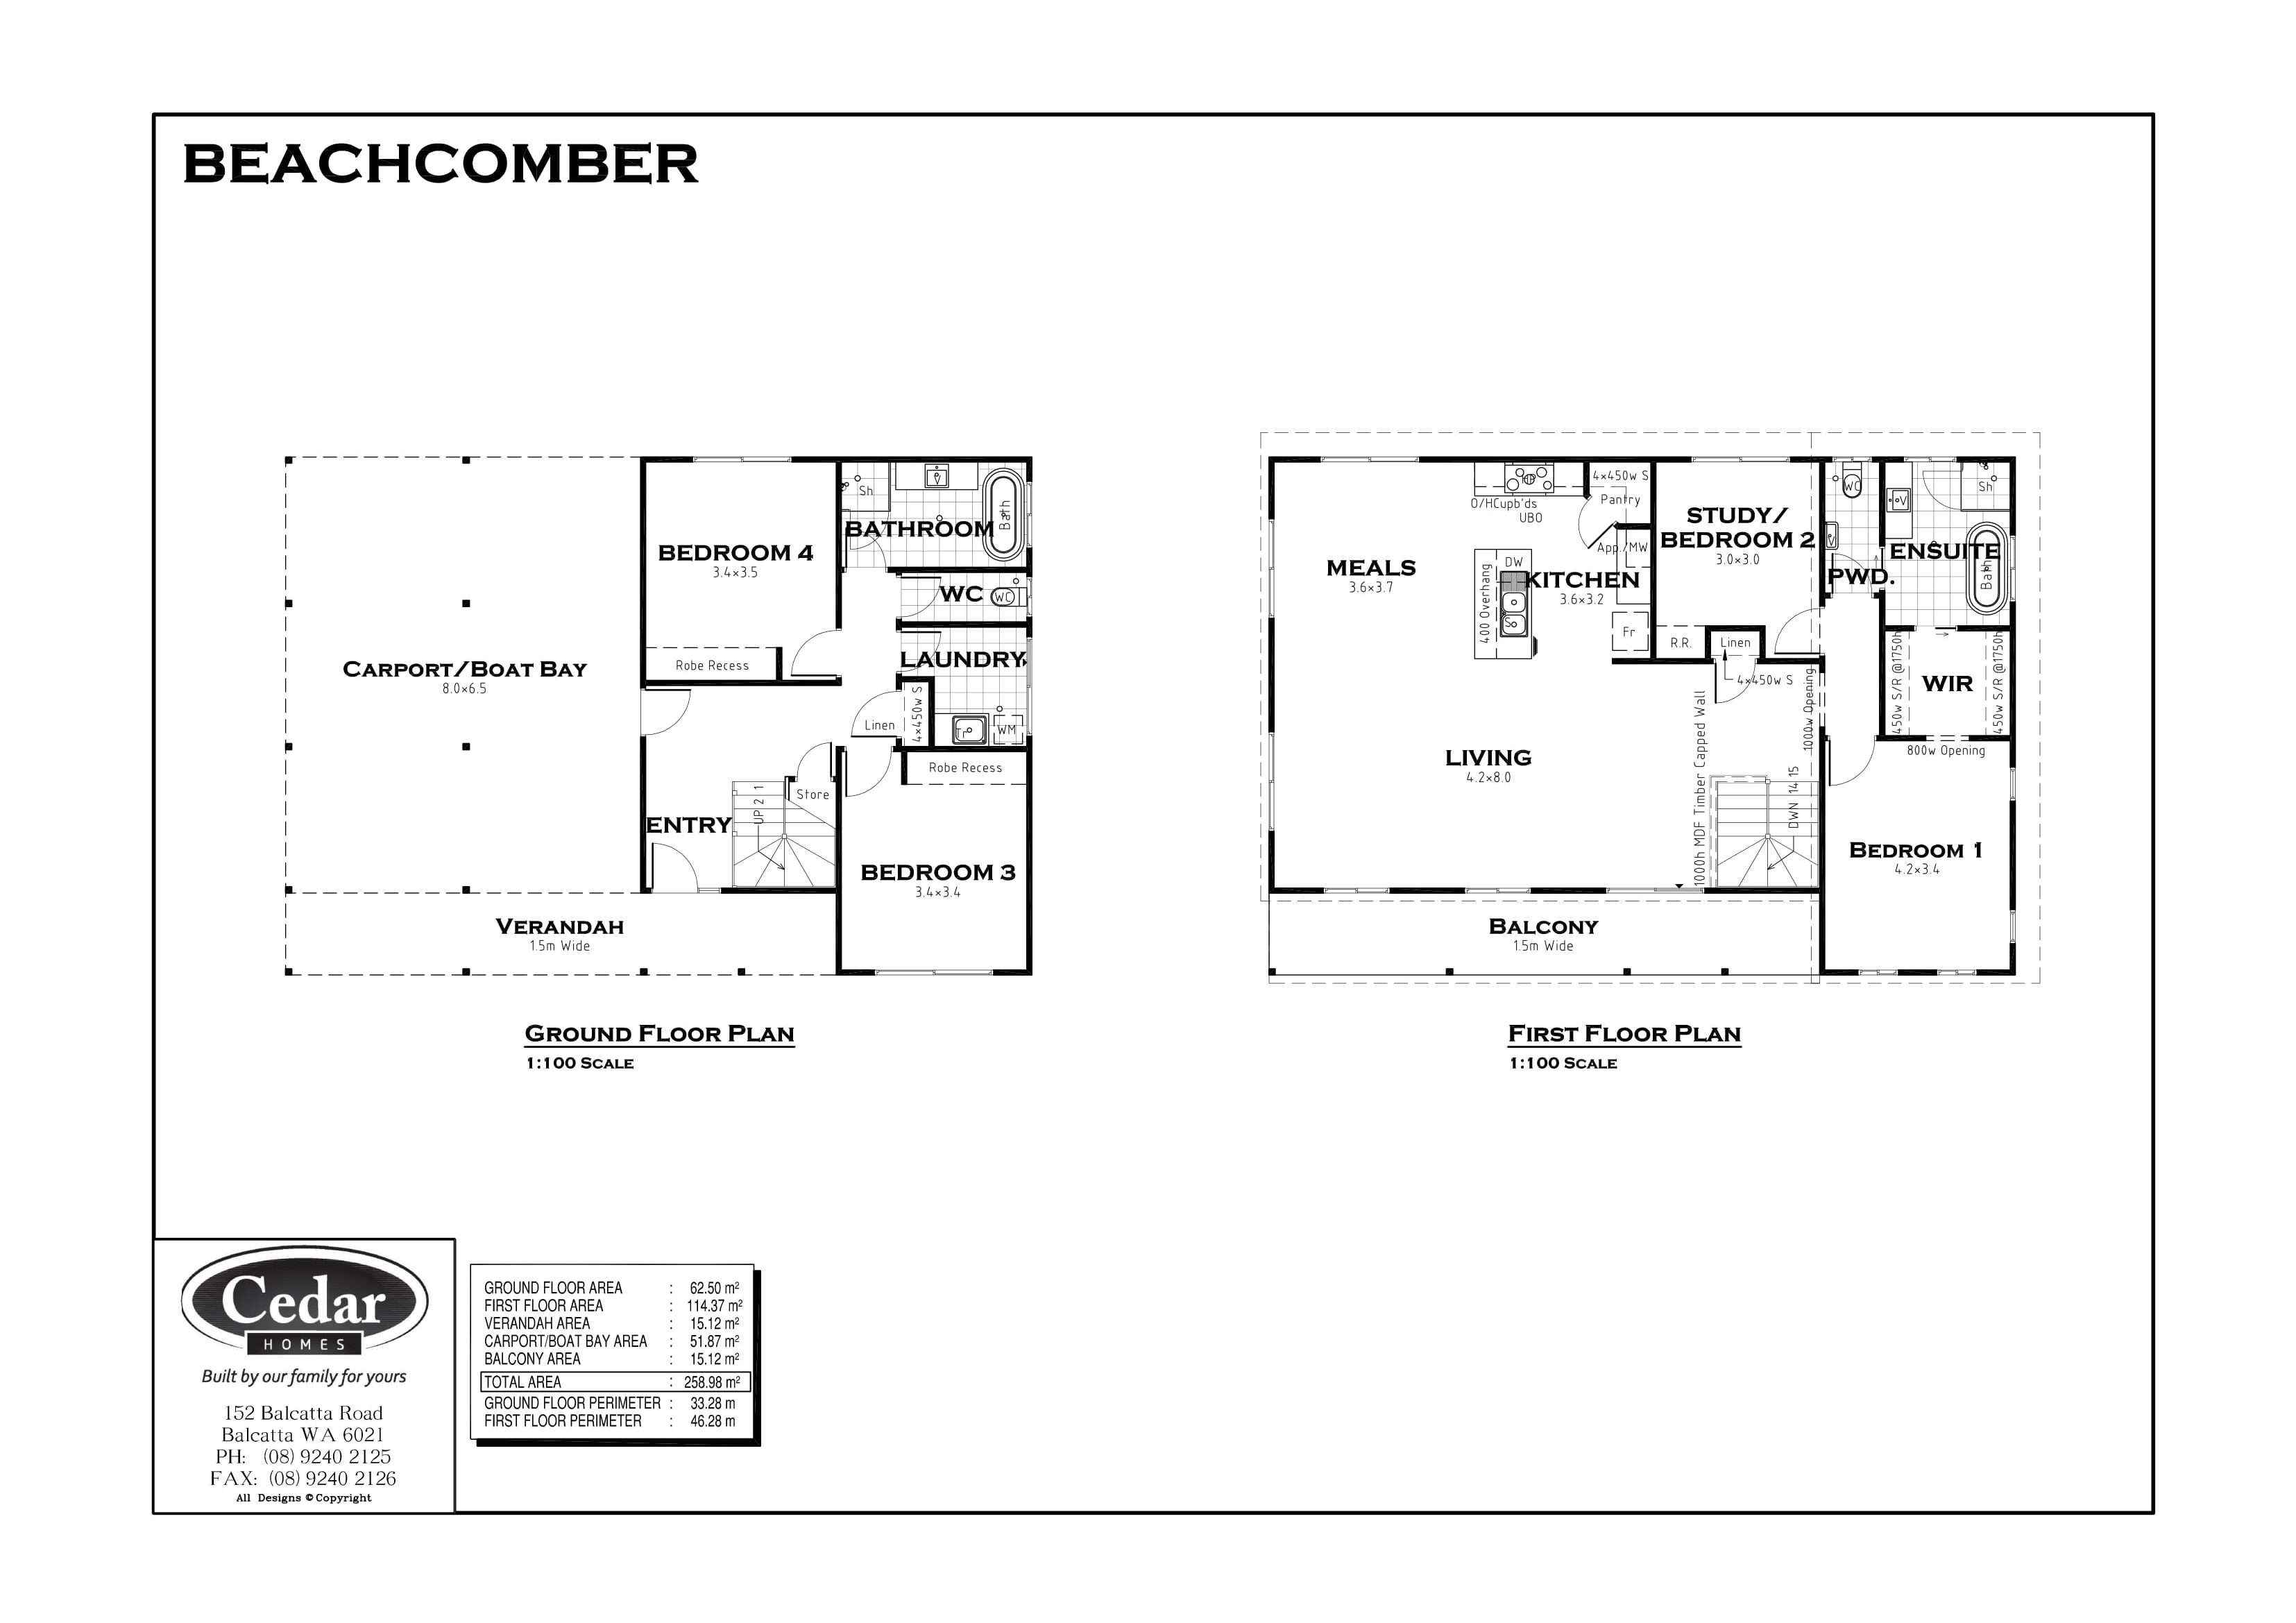 floor plan of tje beachcomber house plan against a white background